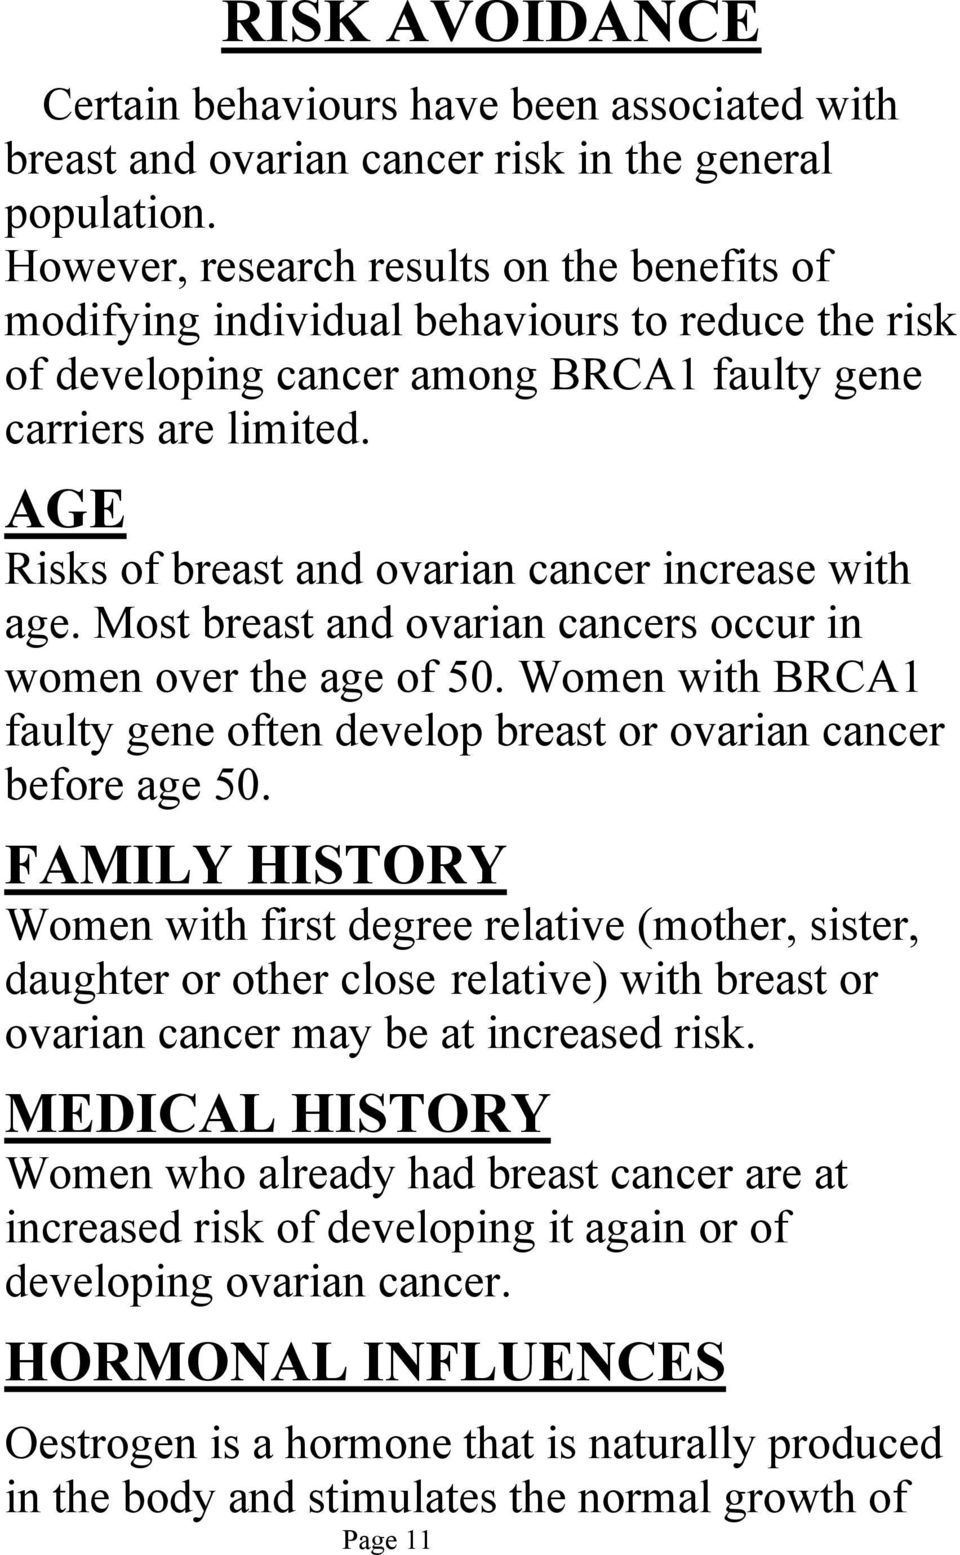 AGE Risks of breast and ovarian cancer increase with age. Most breast and ovarian cancers occur in women over the age of 50.